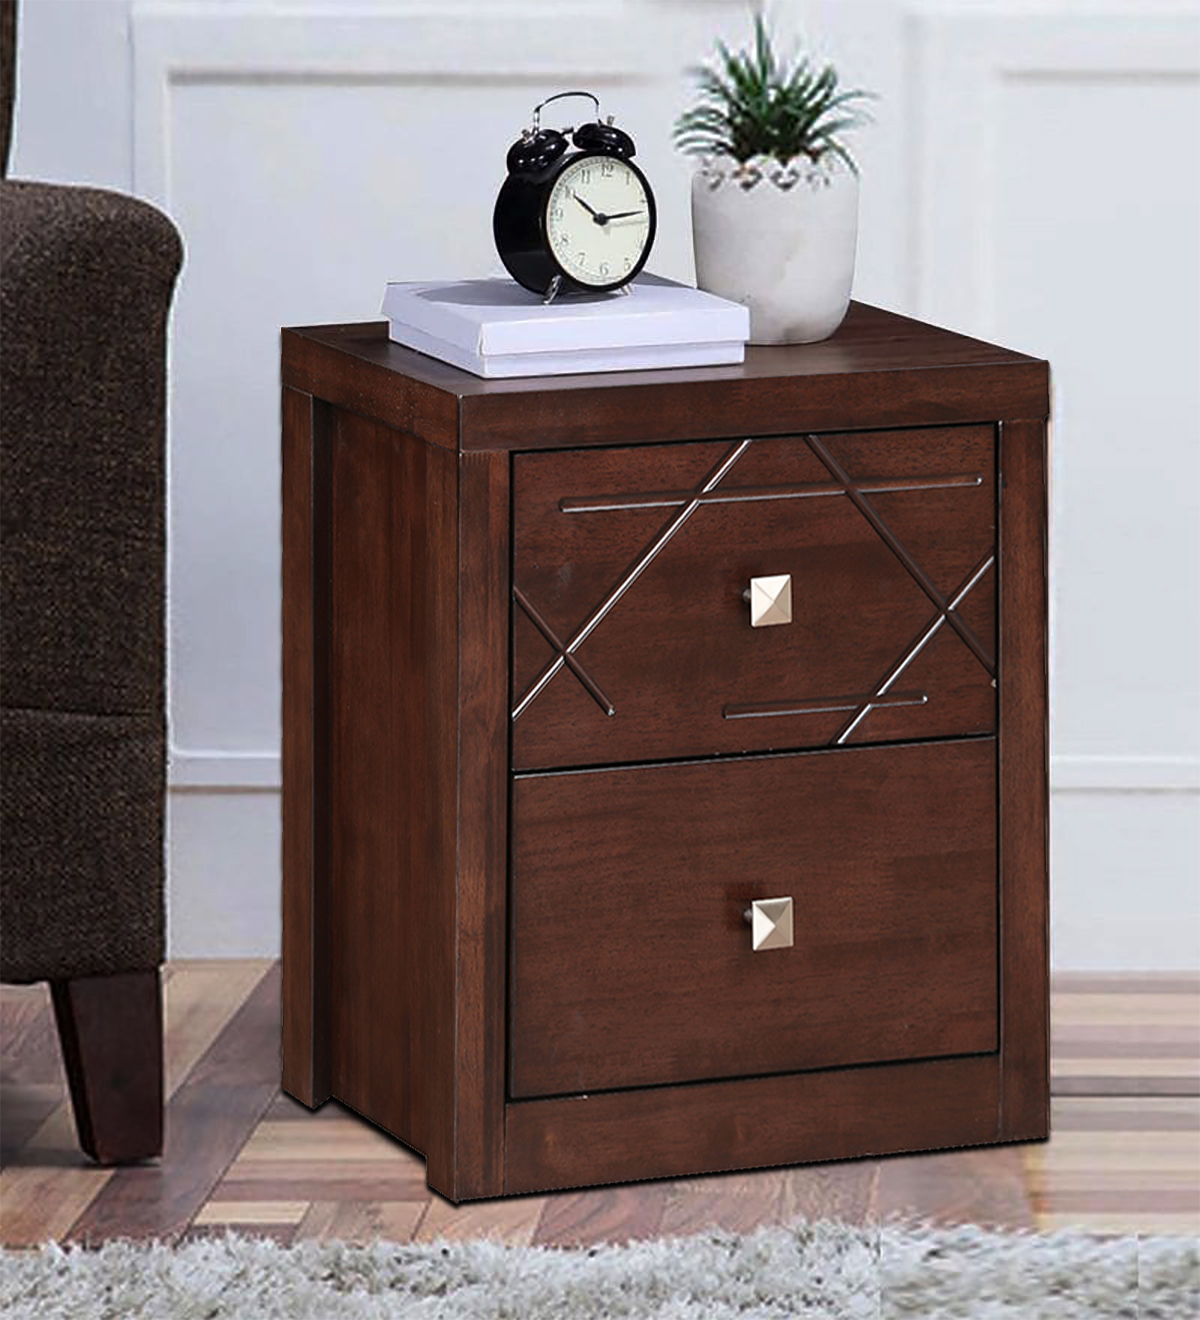 Starlight Engineered Wood Bedside Table in Walnut Colour by HomeTown